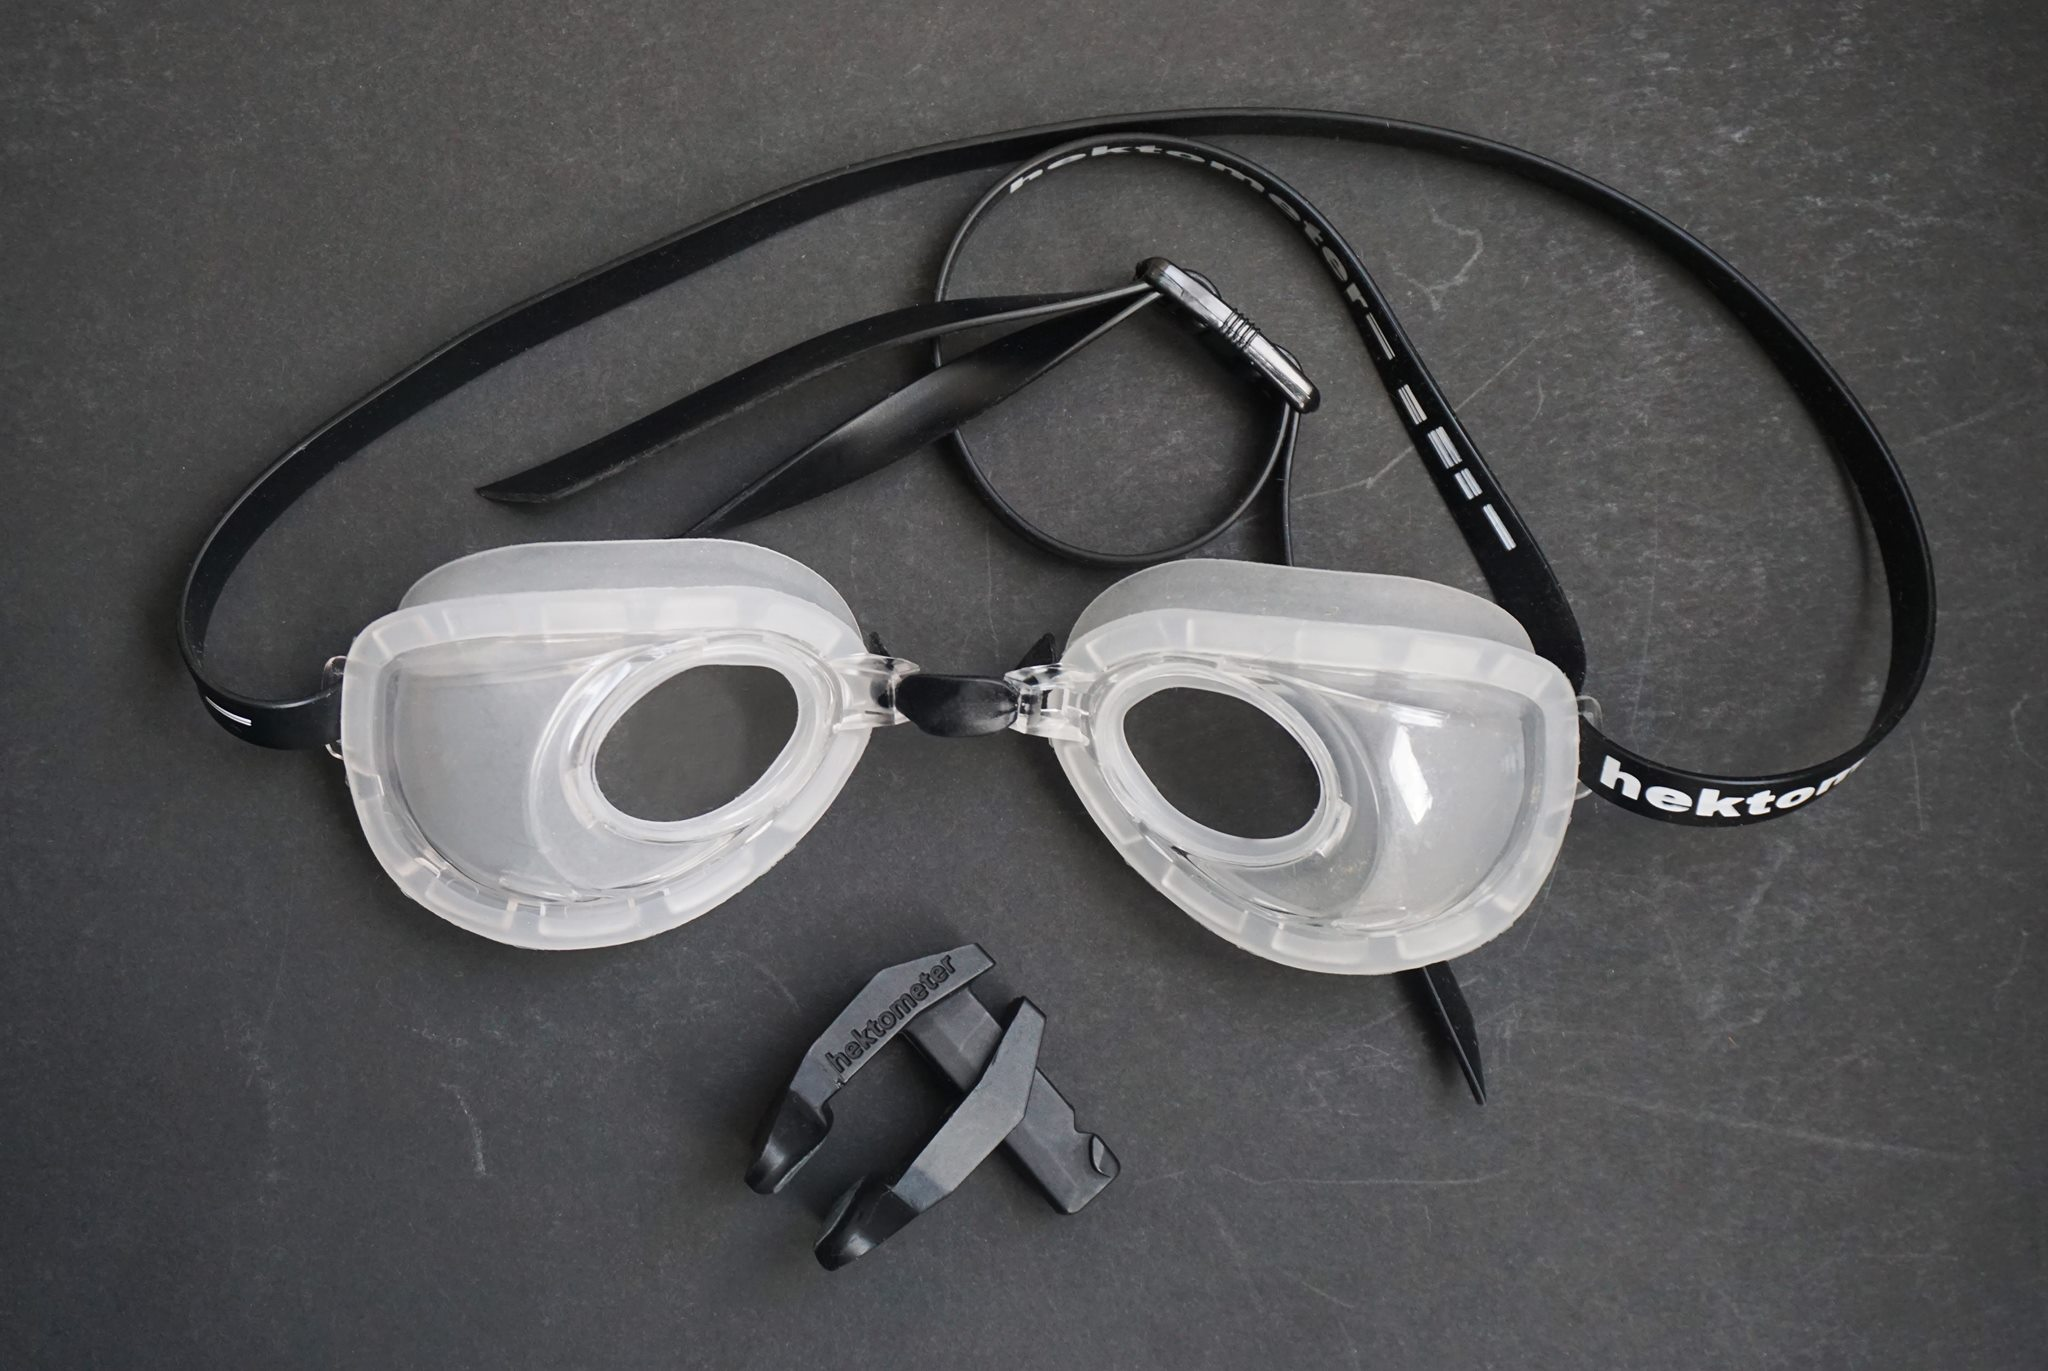 Revolutionary Freediving Goggles Unveiled